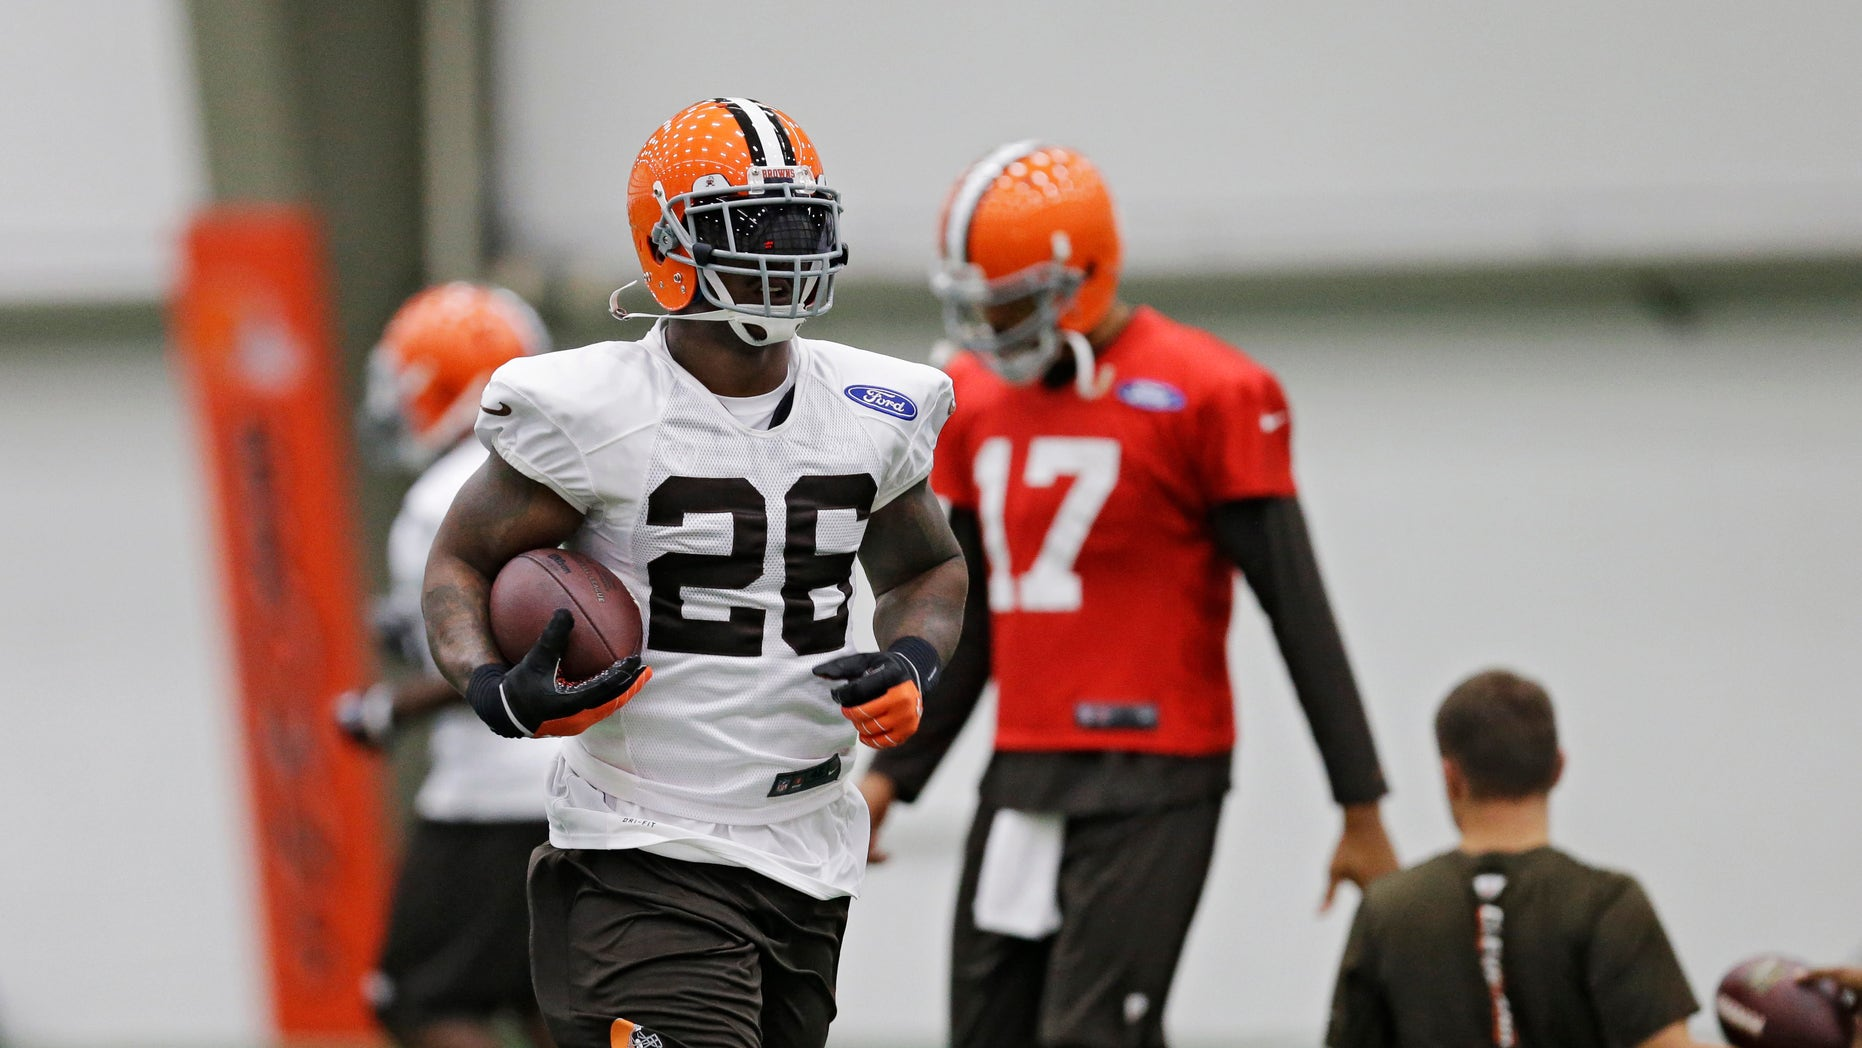 Cleveland Browns running back Willis McGahee (26) runs the ball during practice at the NFL football team's facility in Berea, Ohio Wednesday, Oct. 16, 2013. (AP Photo/Mark Duncan)